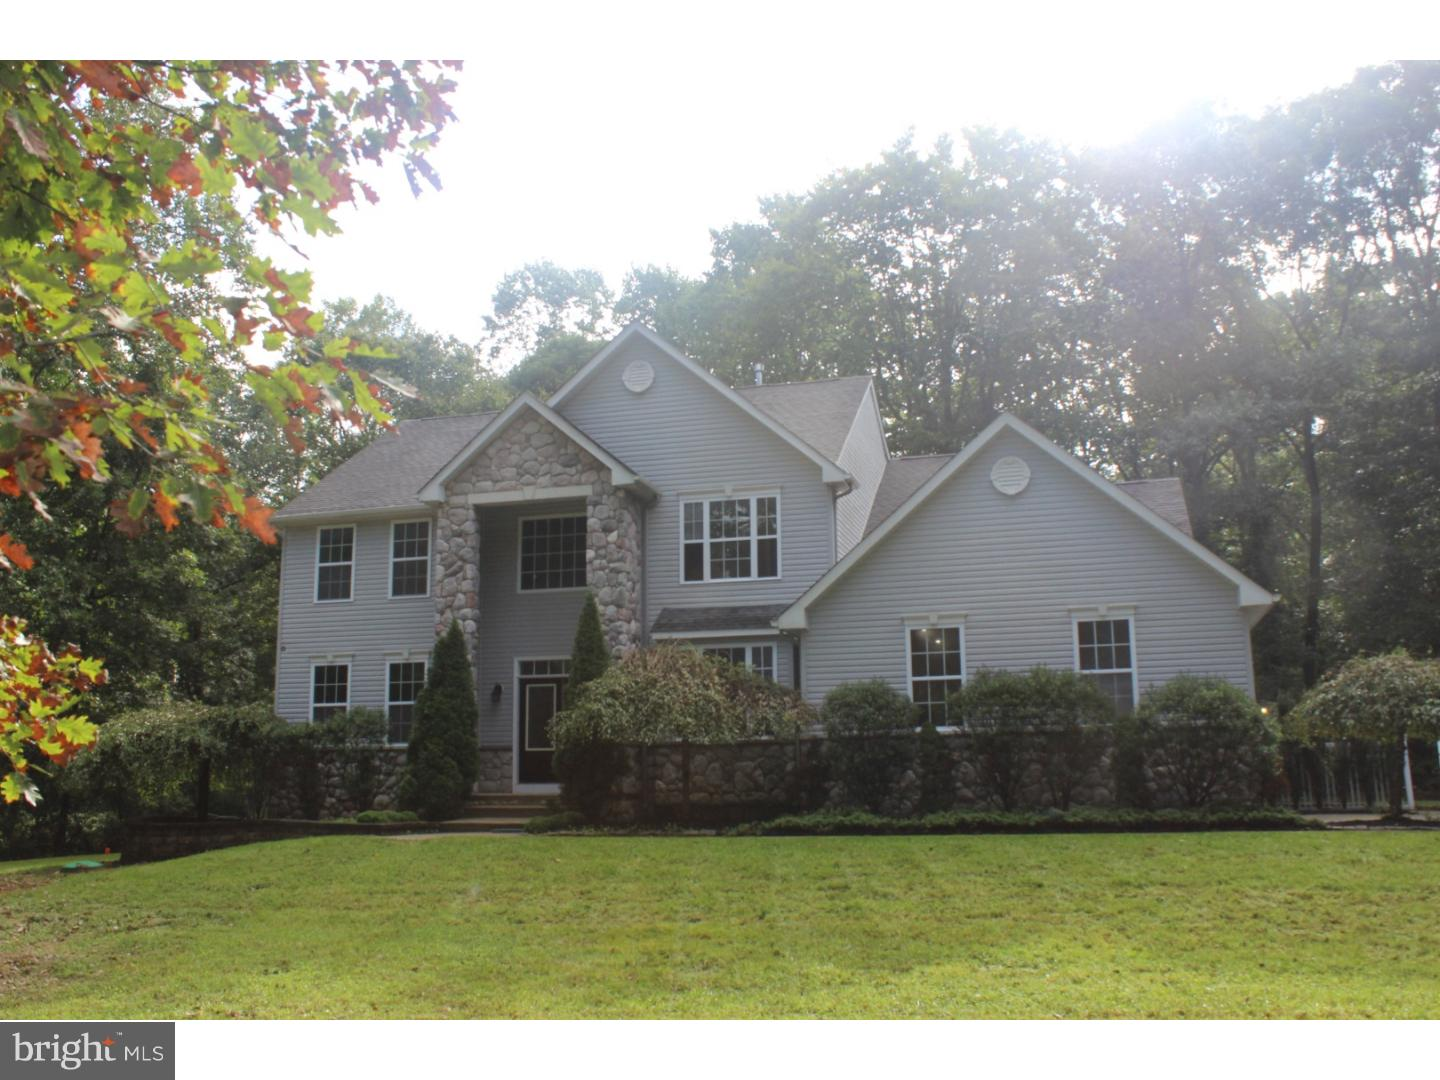 25 WATERVIEW DRIVE, PILESGROVE, NJ 08098